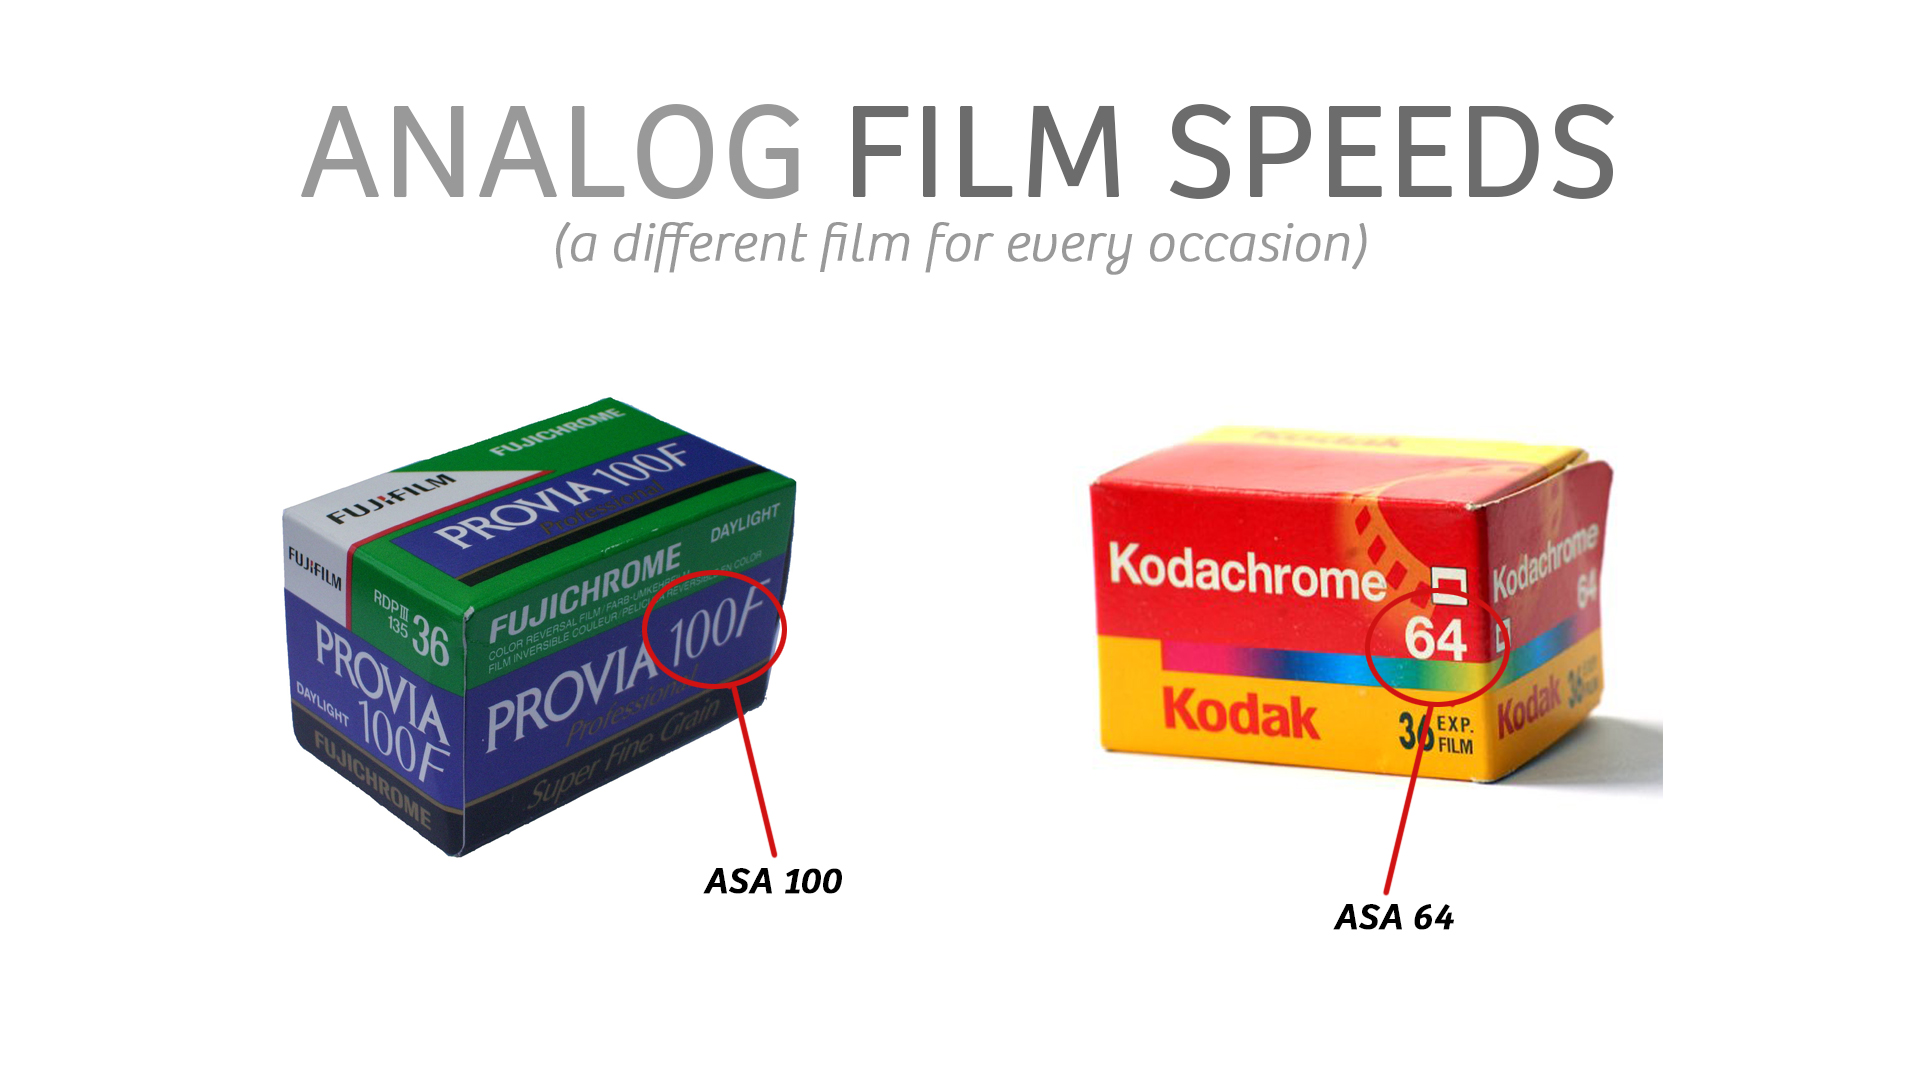 Analog Film Speeds